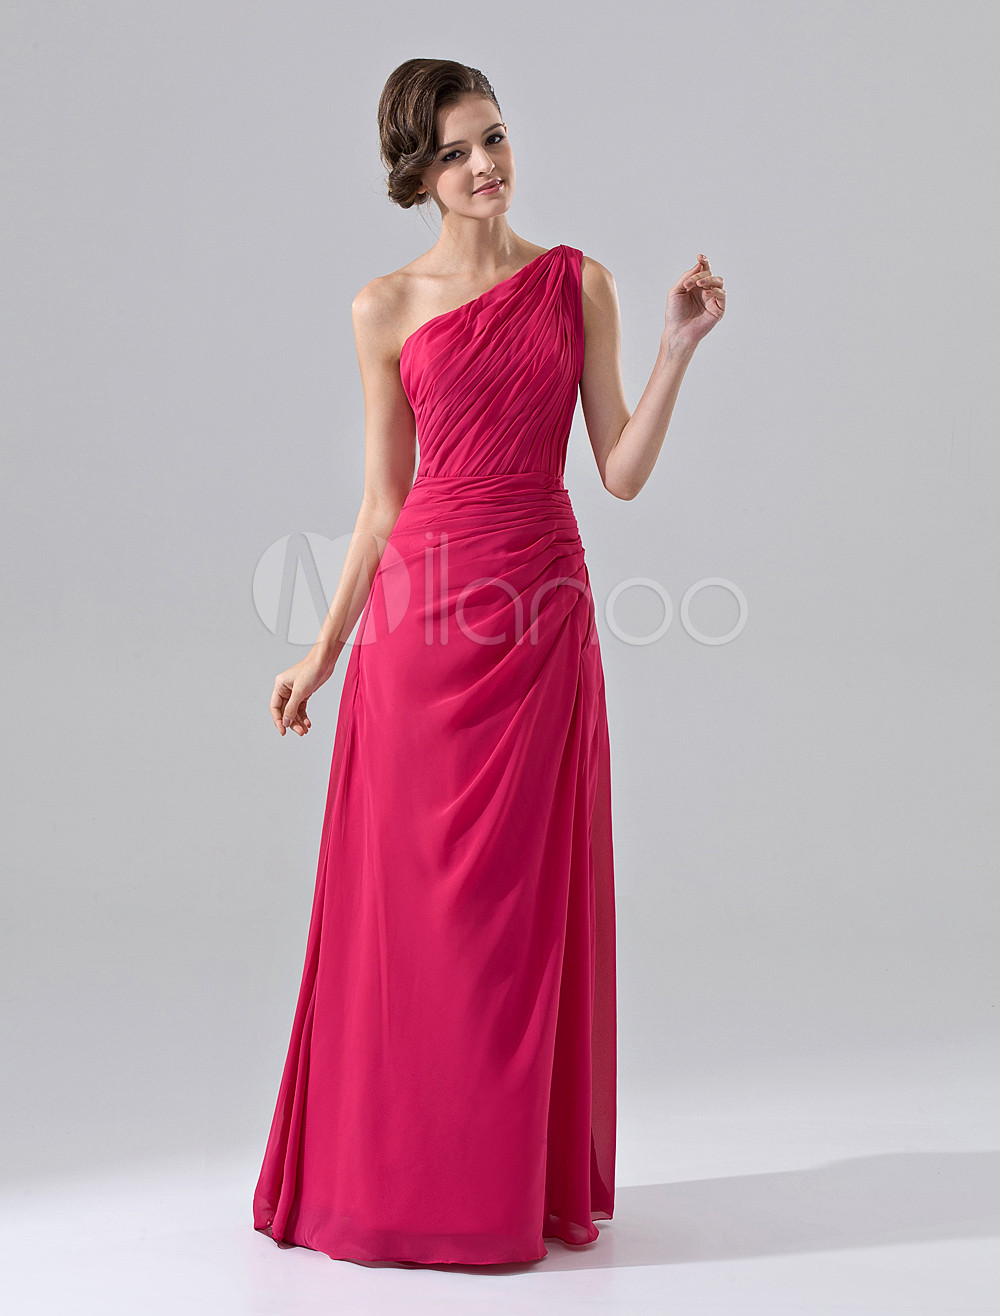 Maxi Bridesmaid Dress Hot pink Chiffon One Shoulder Ruched Floor Length Prom Dress